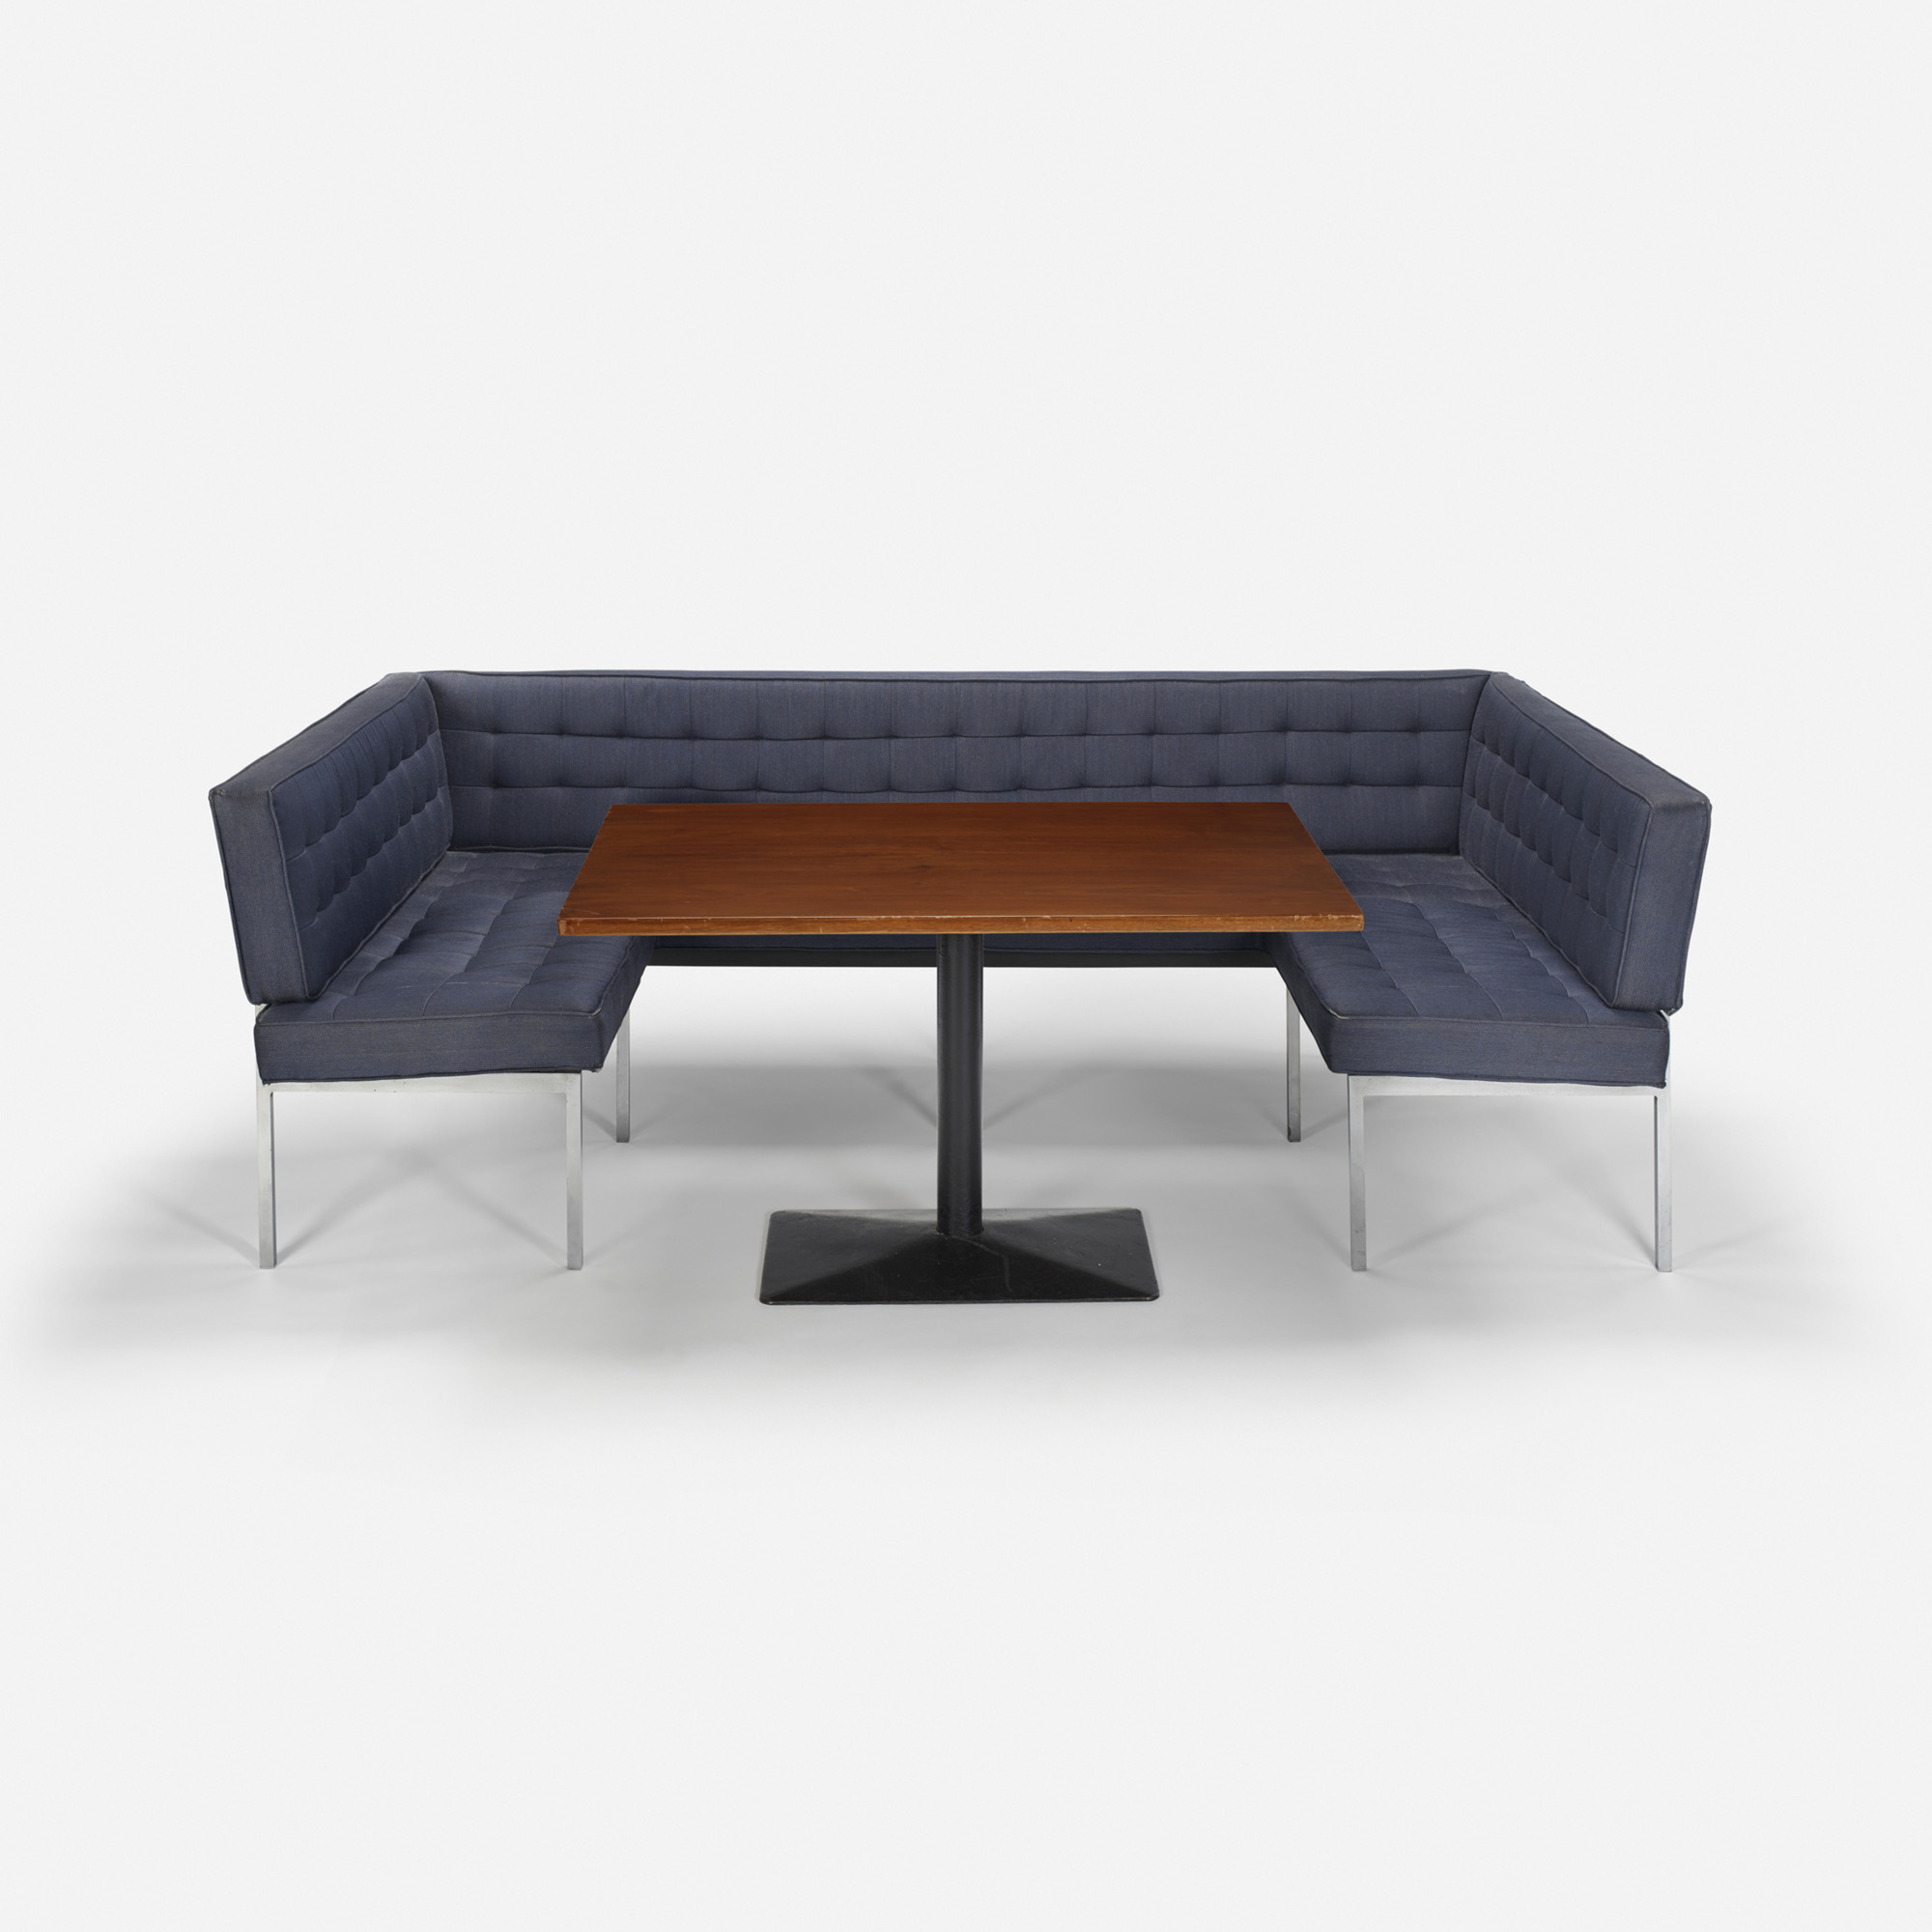 224: Philip Johnson Associates / Three-sided banquette and table 37 from the Grill Room (1 of 1)